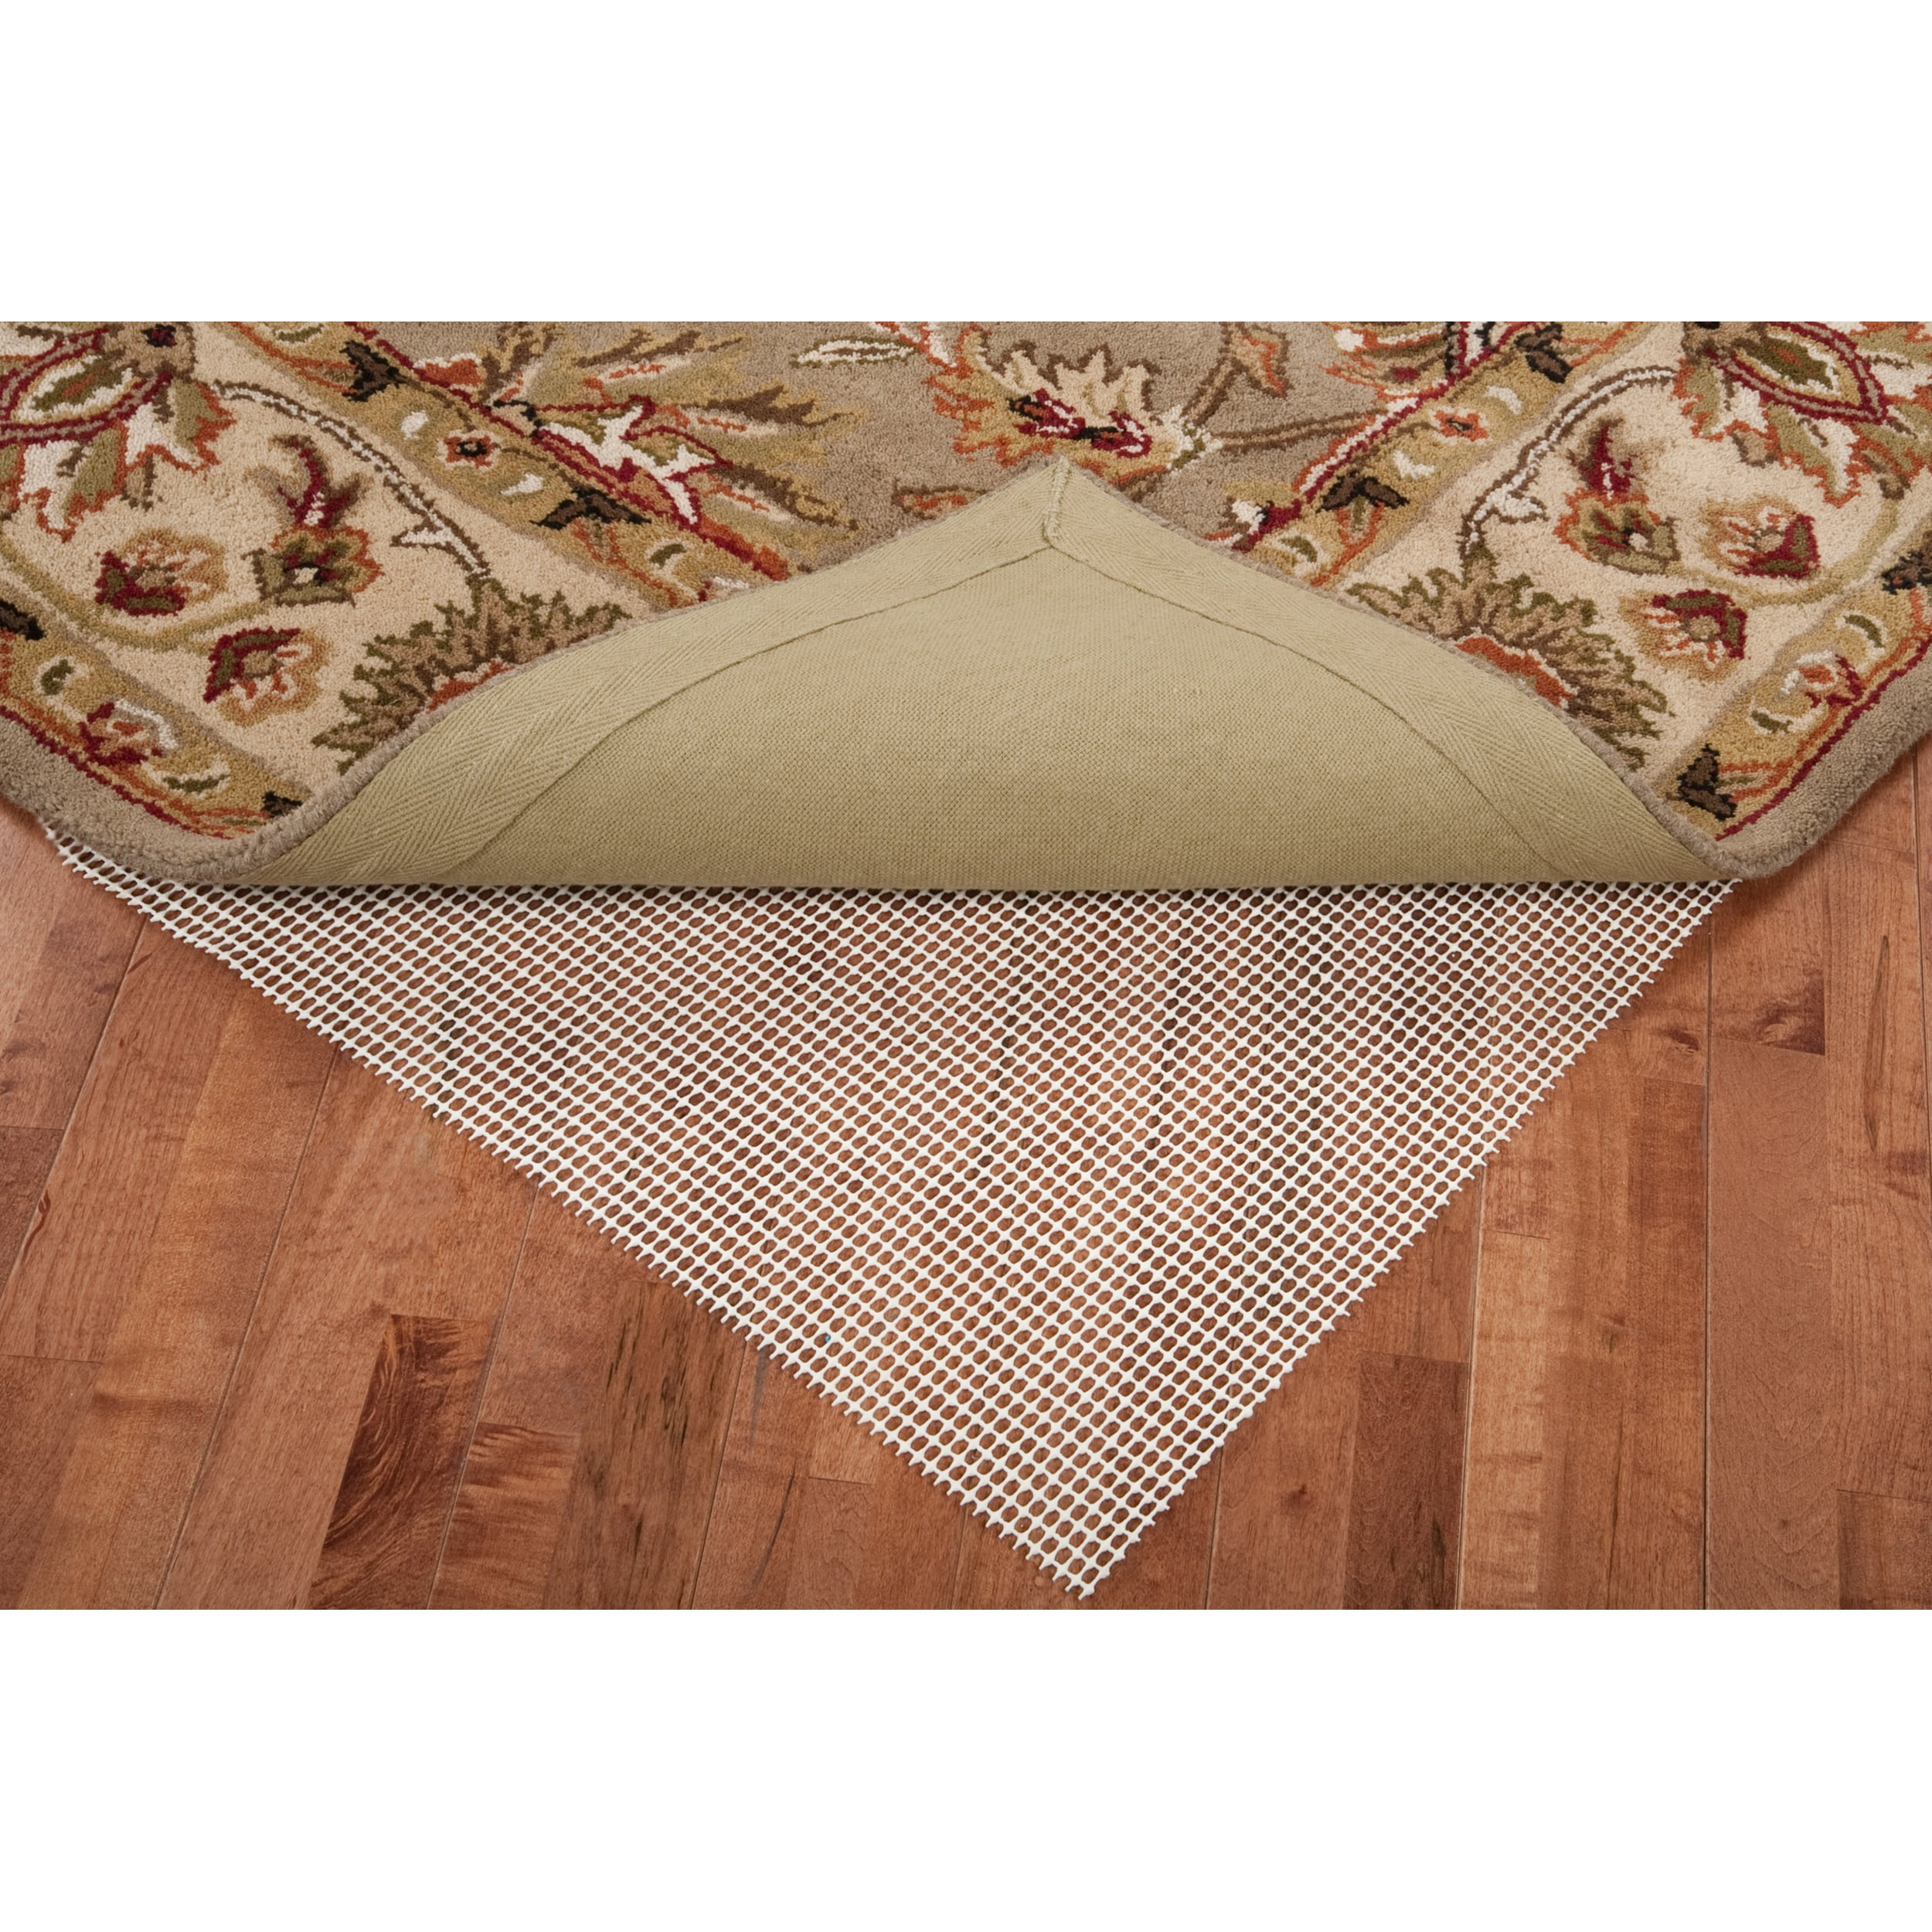 Limitless Rug Pad (4' Round)